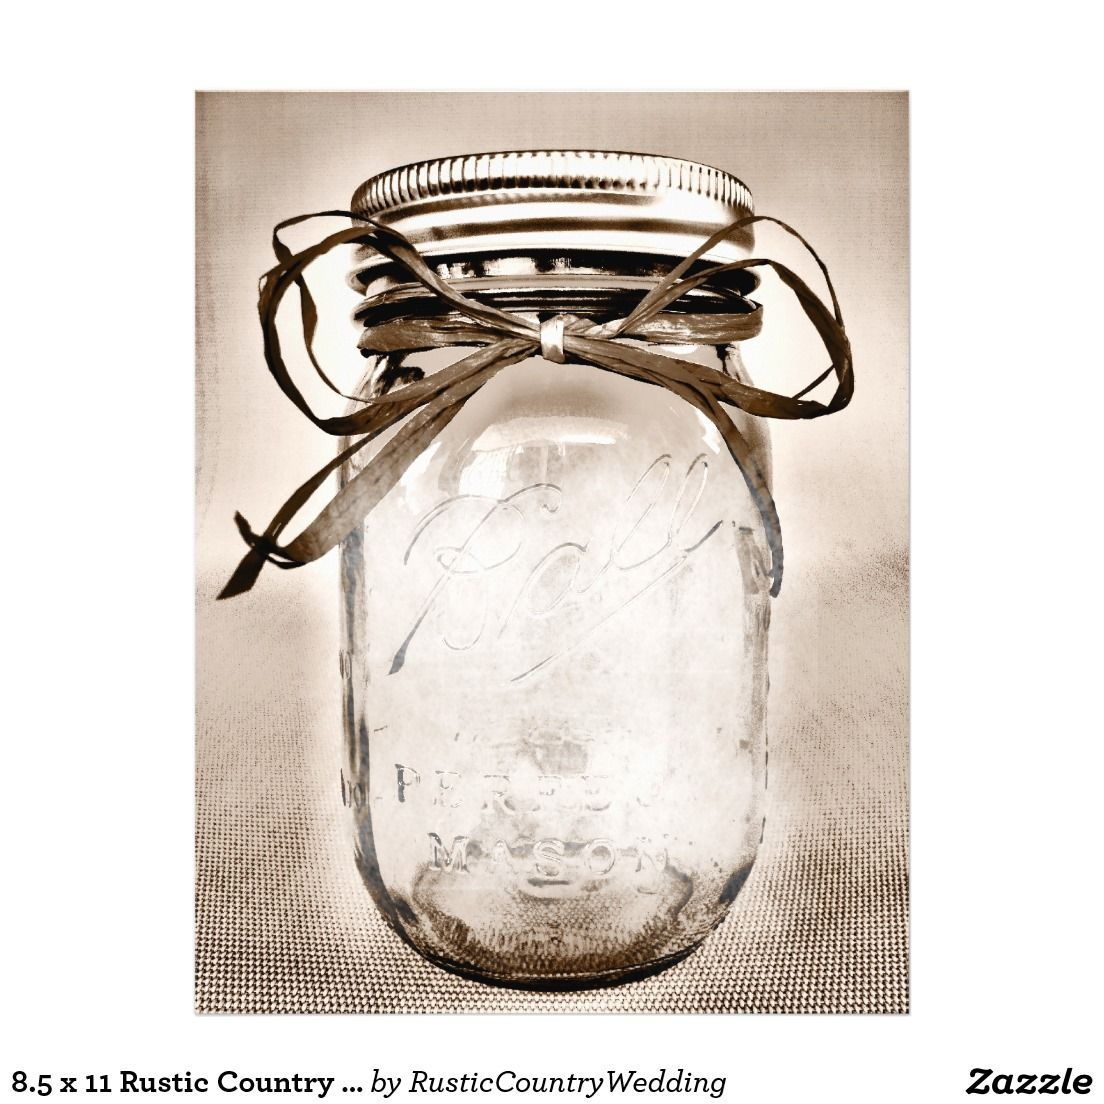 85 X 11 Rustic Country Mason Jar Blank Paper With The Design On Both Sides